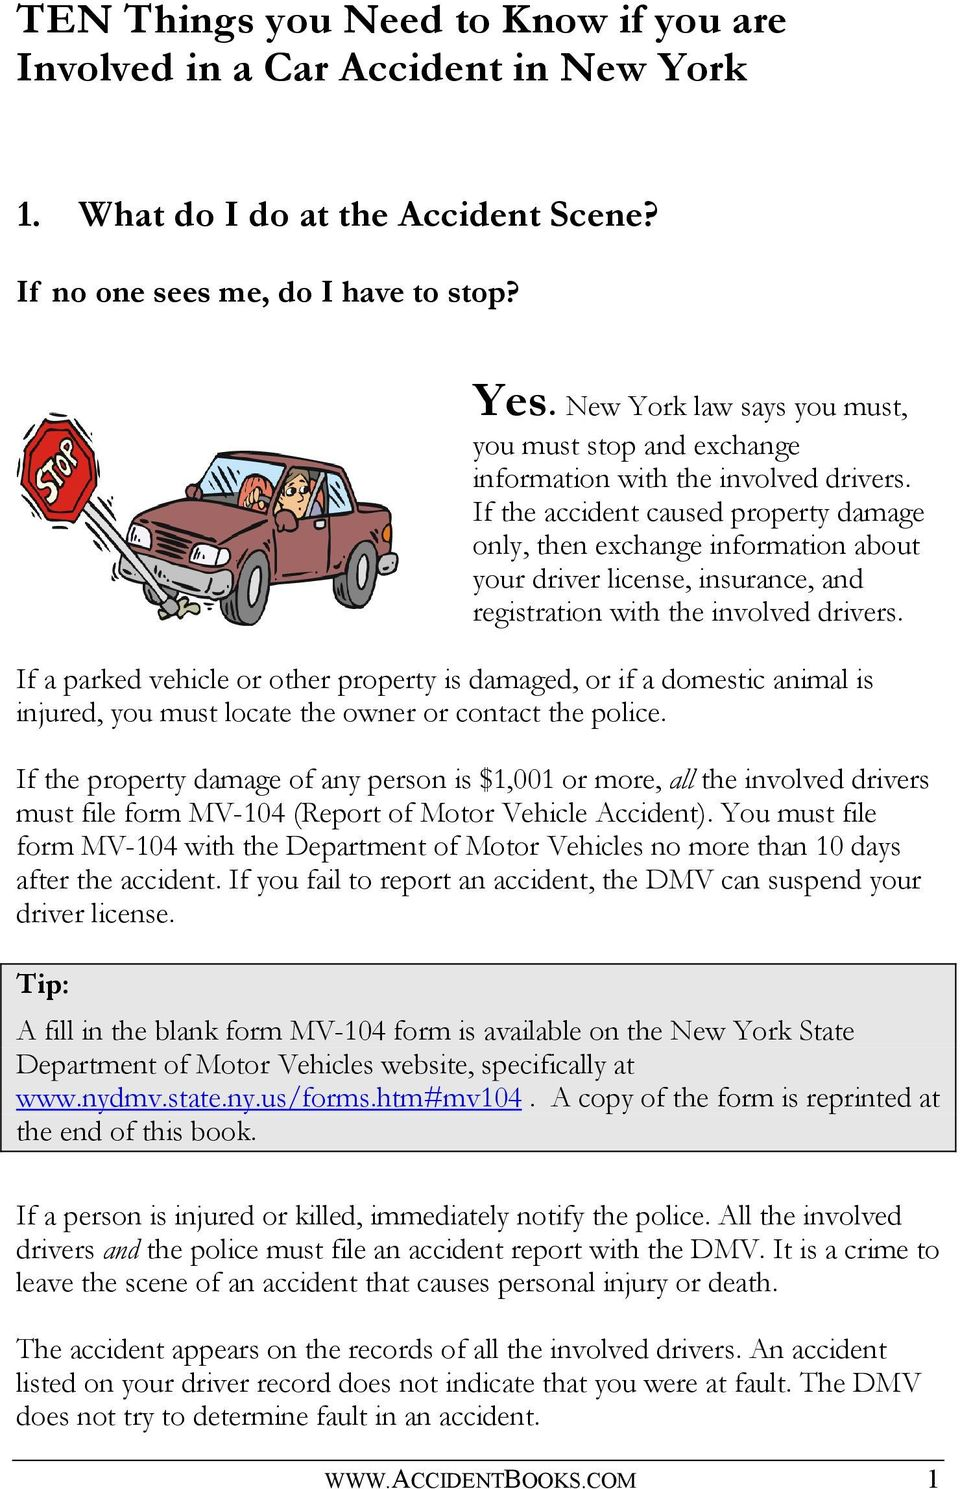 New York State Department Of Motor Vehicles Form Mv 104 Nemetas